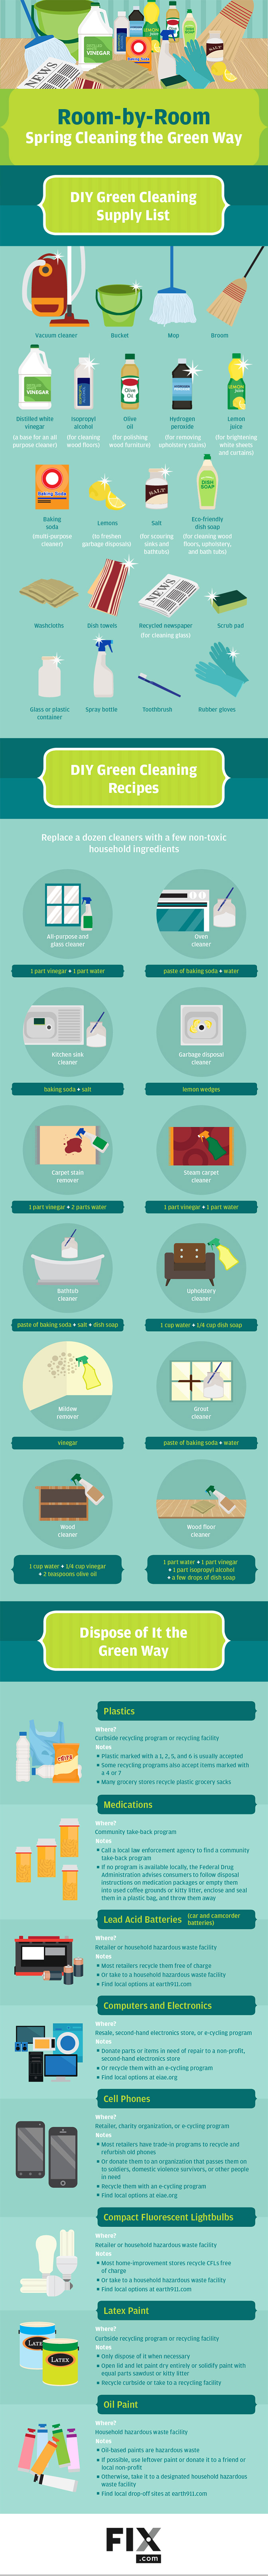 Green Spring Cleaning Tips | Fix com